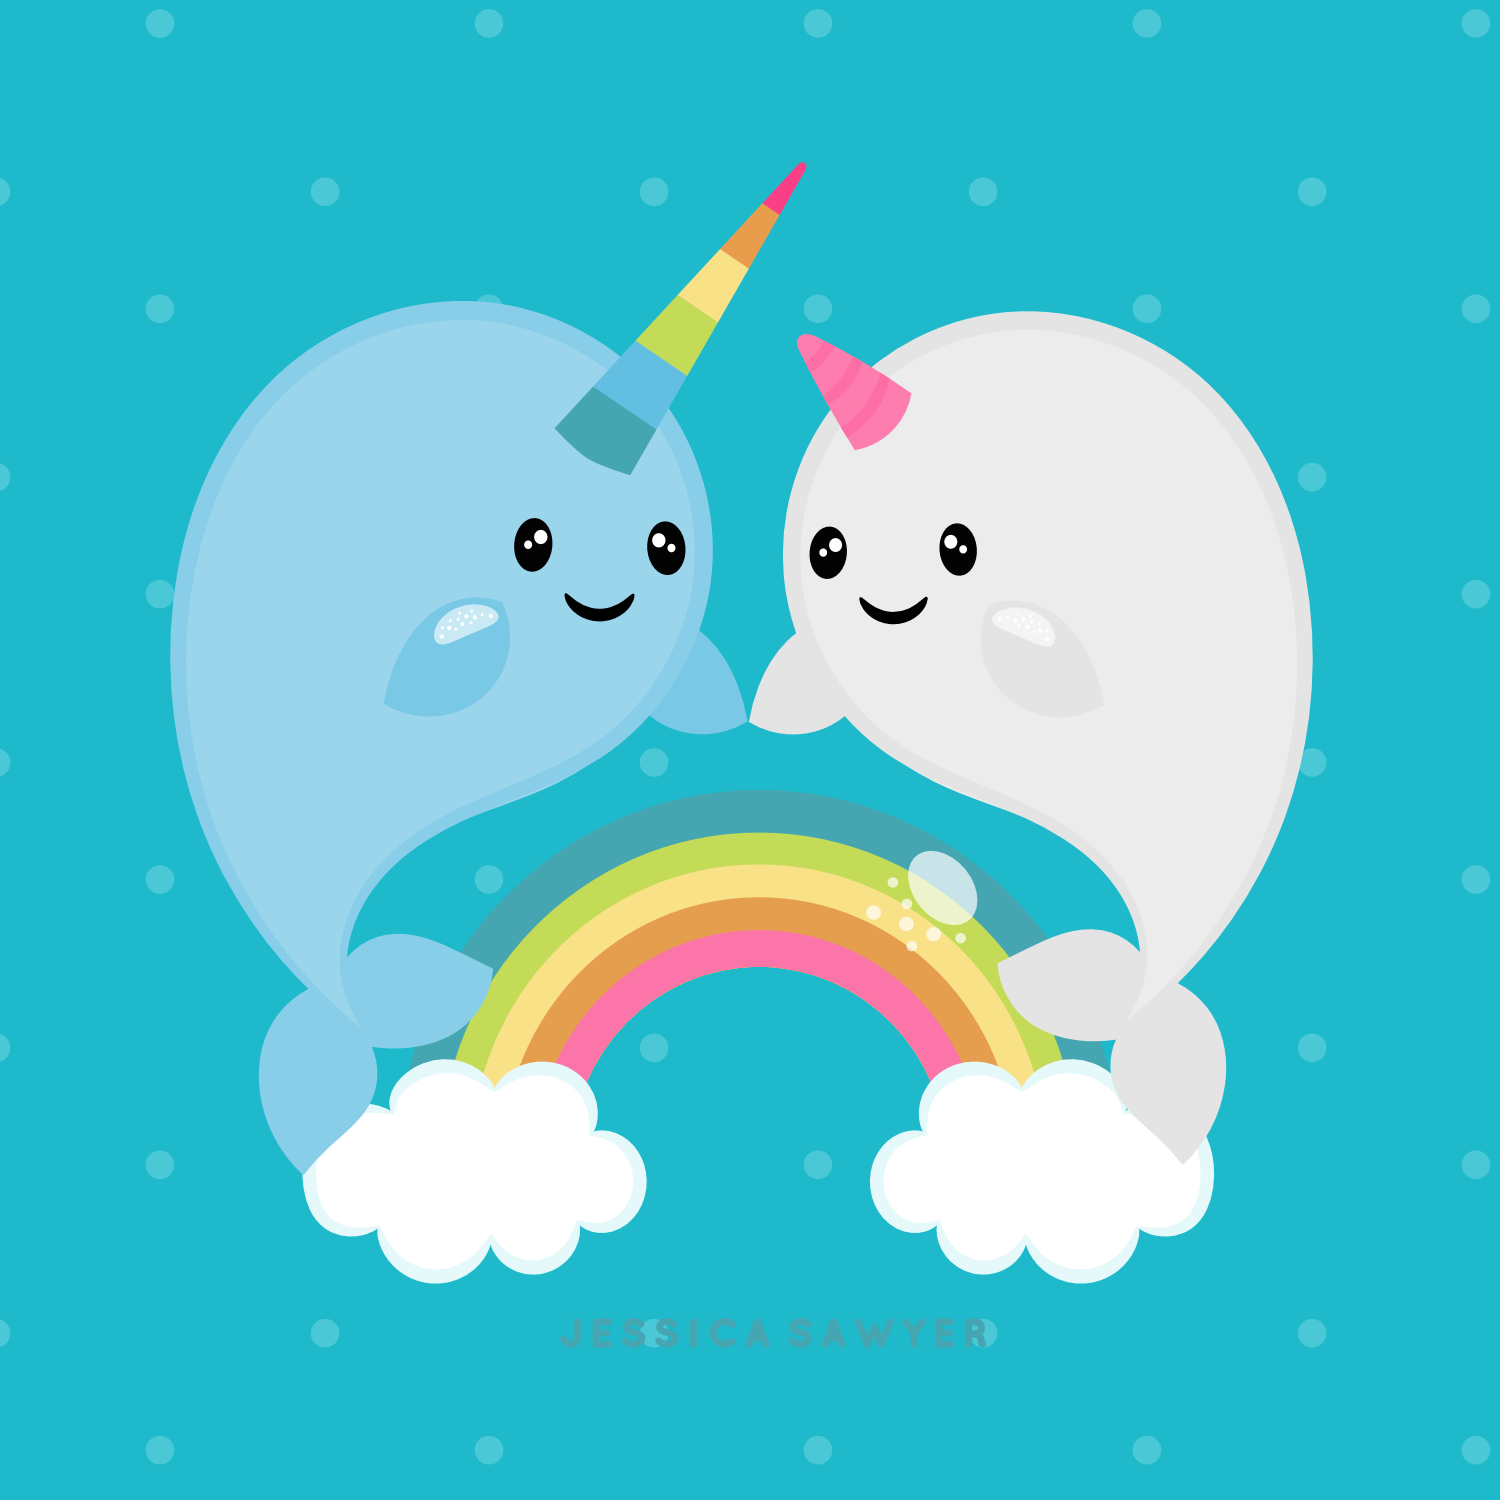 Instant Download Narwhal Clipart And Vectors For Personal Etsy Cute Narwhal Narwhal Clip Art